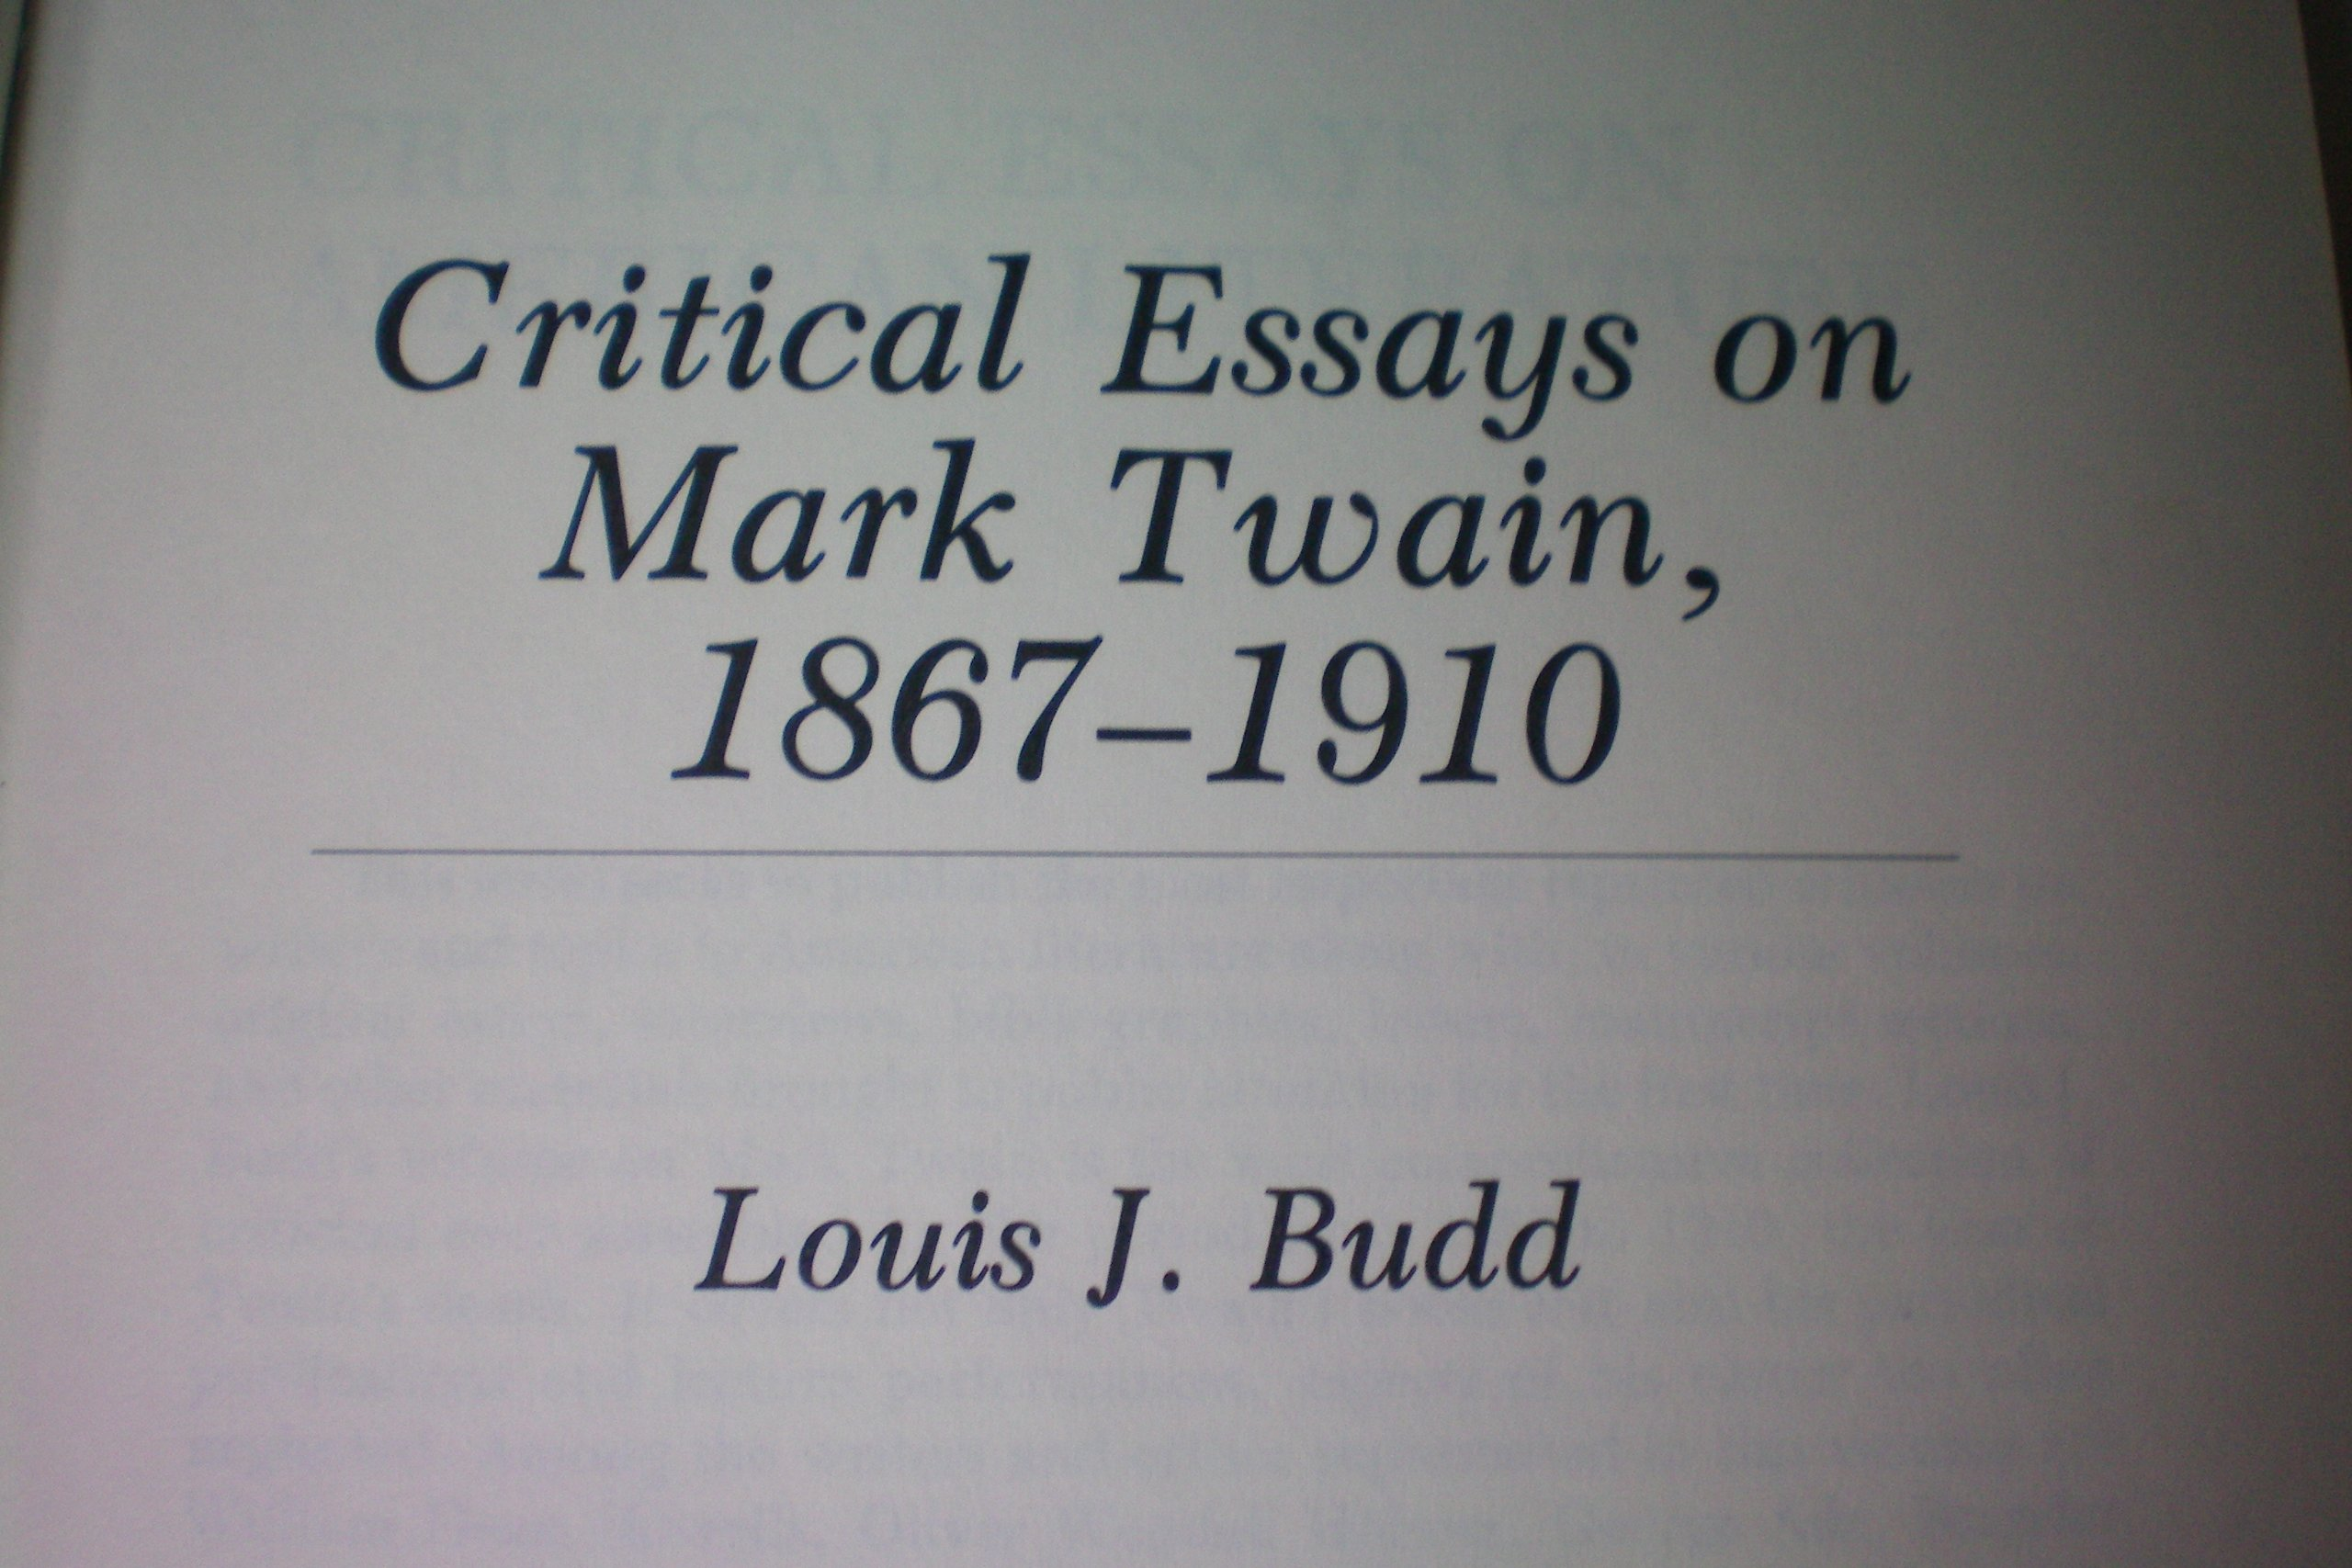 essay on mark twain mark twain s masterpiece the adventures of  twain essays twain essays amazon what is man and other mark critical essays on mark twain